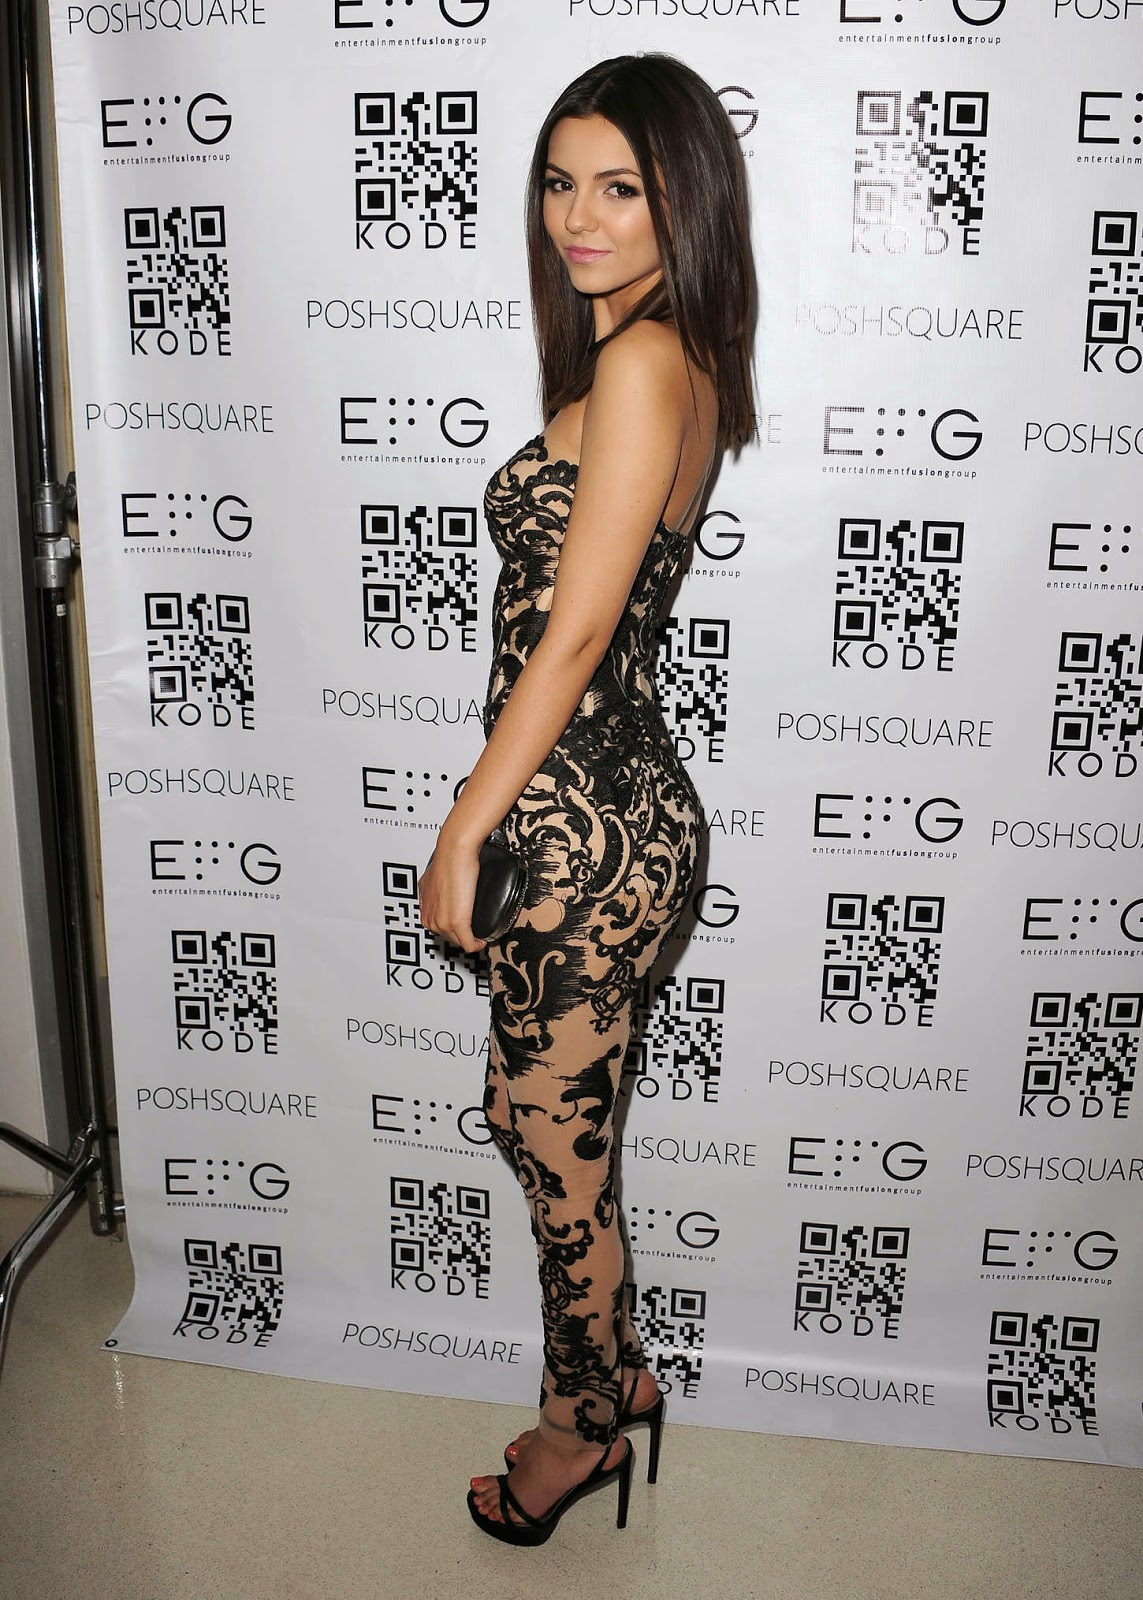 Victoria Justice stuns in a revealing lace catsuit at the Kode Mag Spring 2015 Issue Release Party in LA